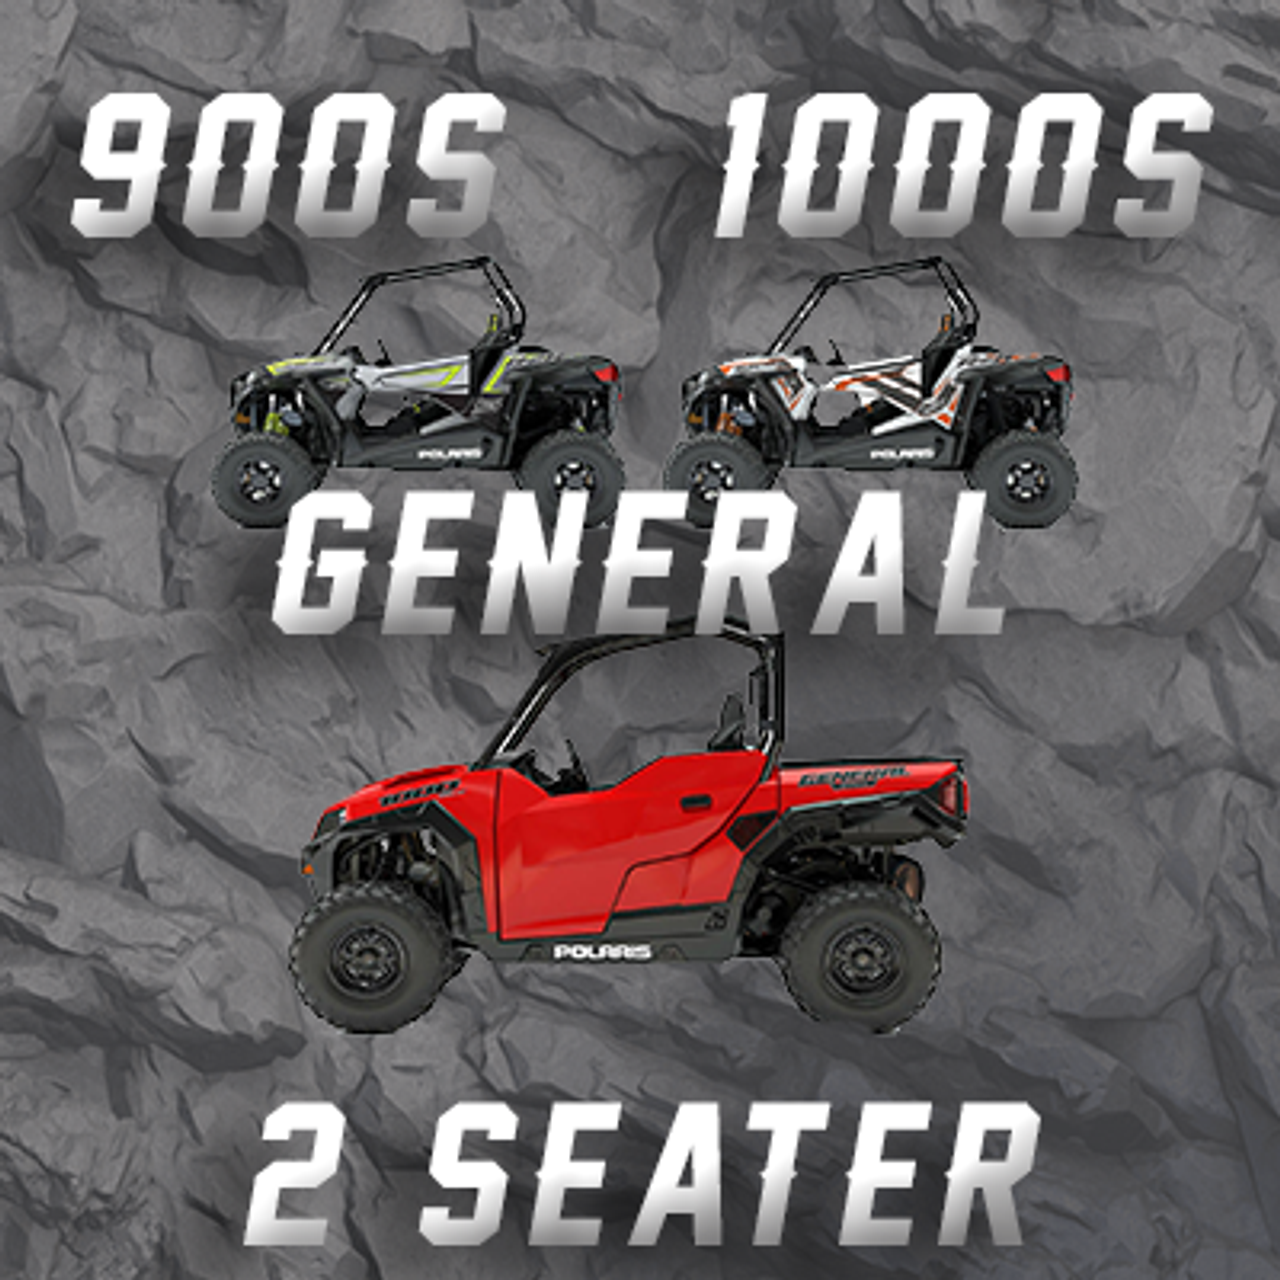 POLARIS RZR 900S/XC - 1000S - GENERAL 2 SEATER TENDER SPRING SWAP KIT